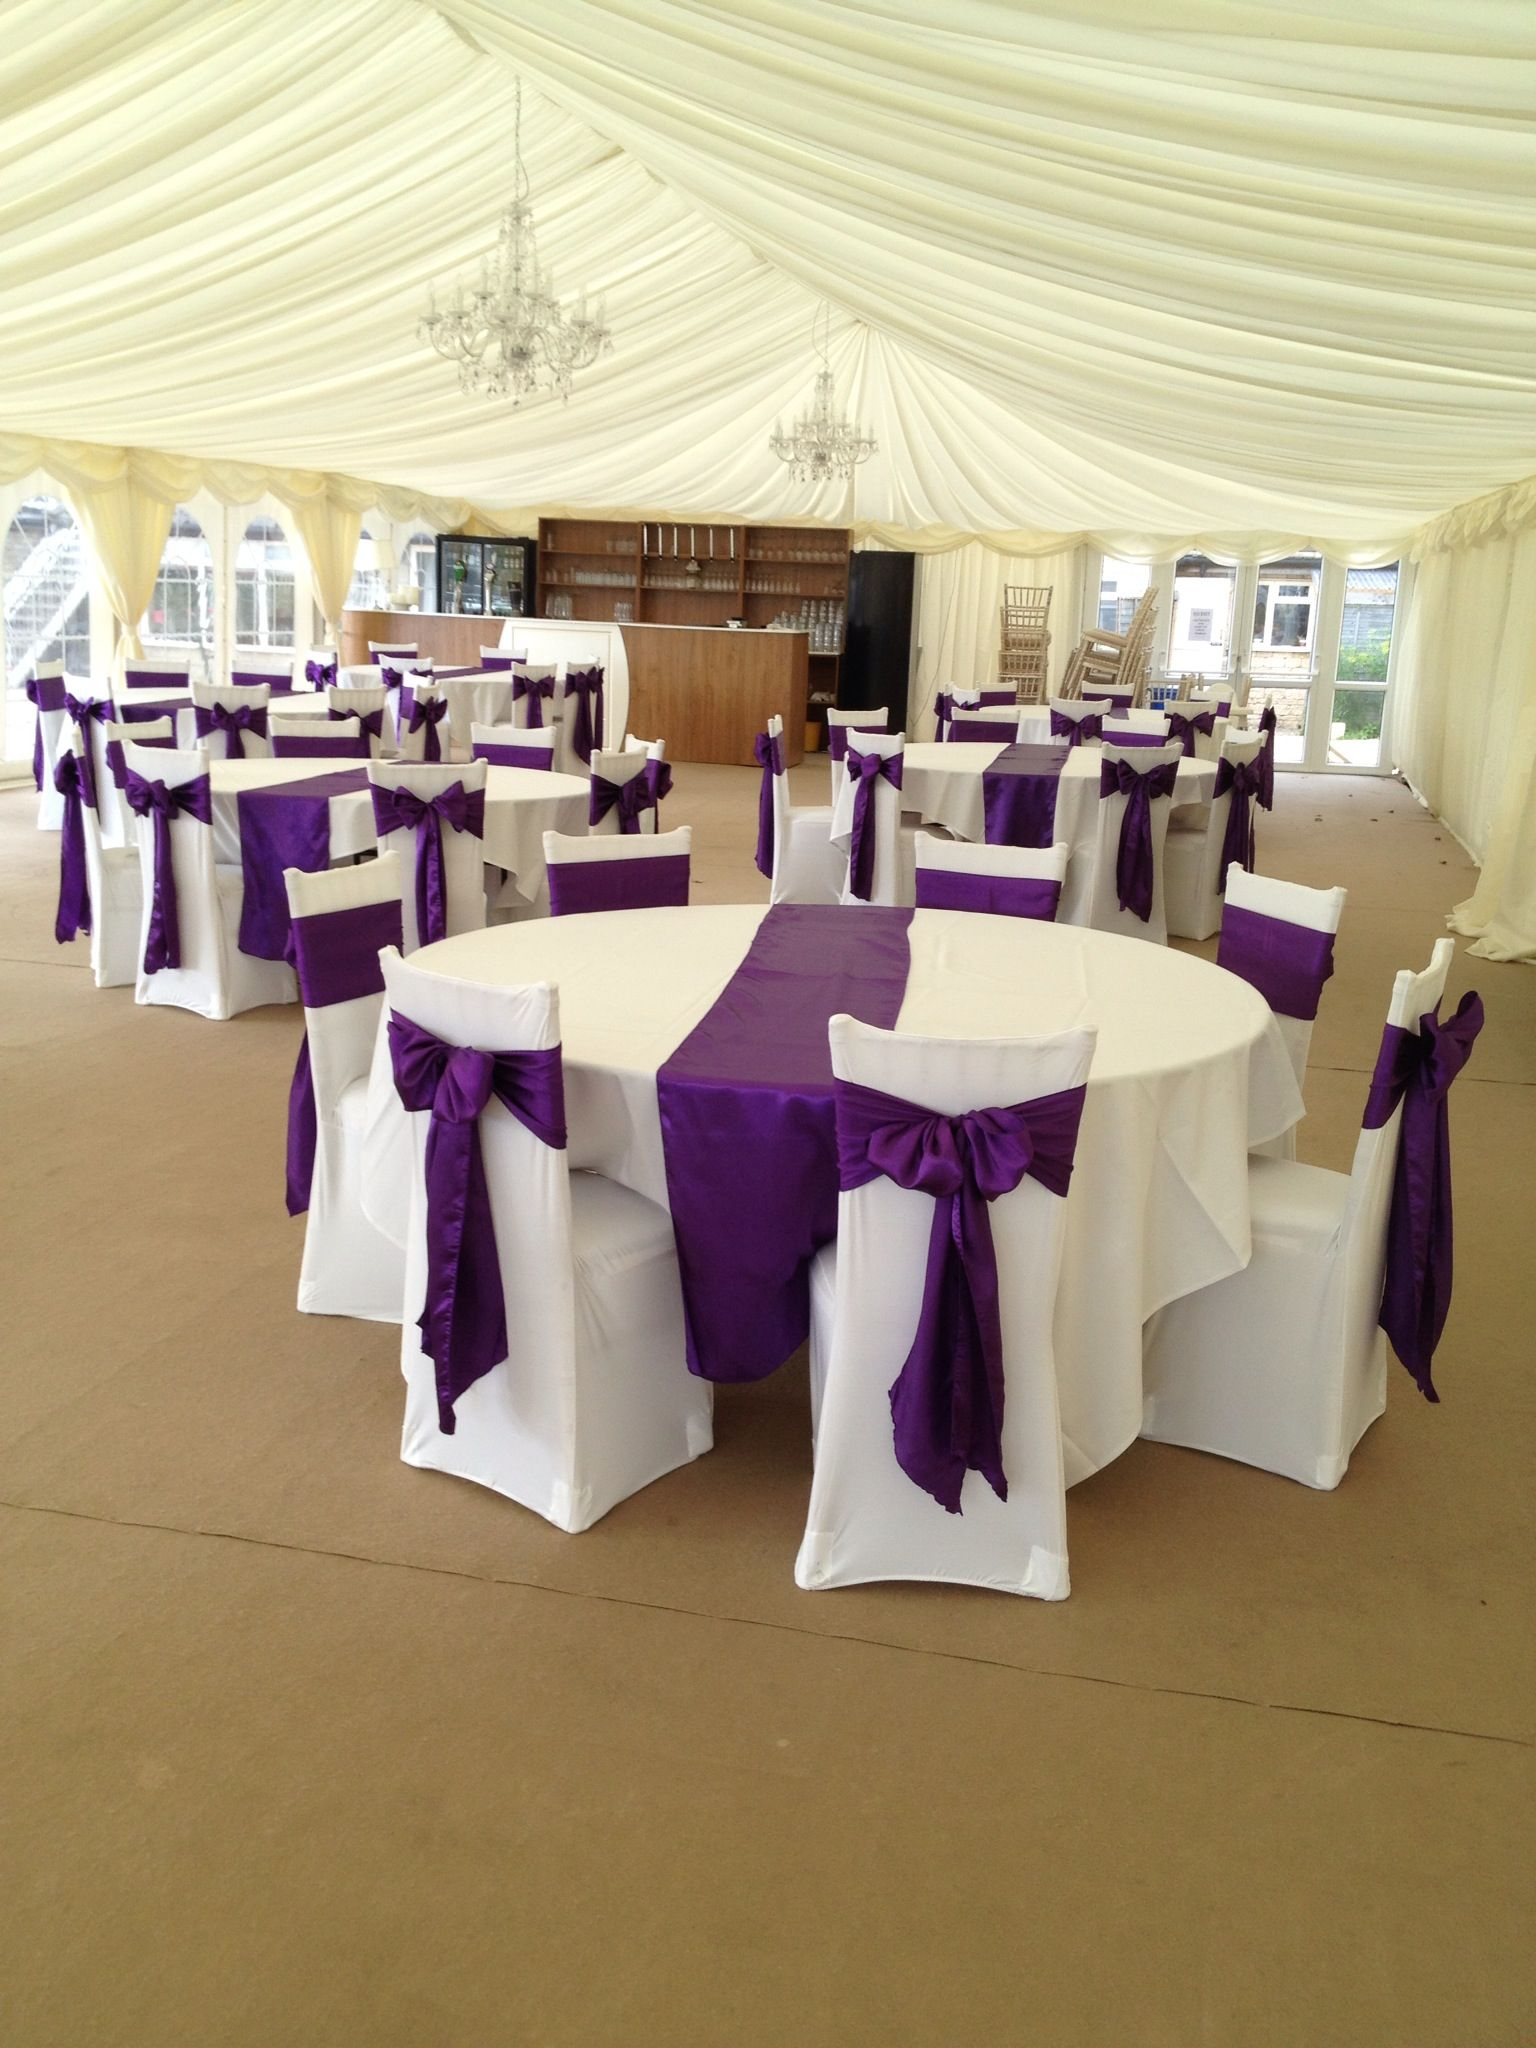 Purple Satin Sashes/table Runners With White Covers And A White Tablecloth